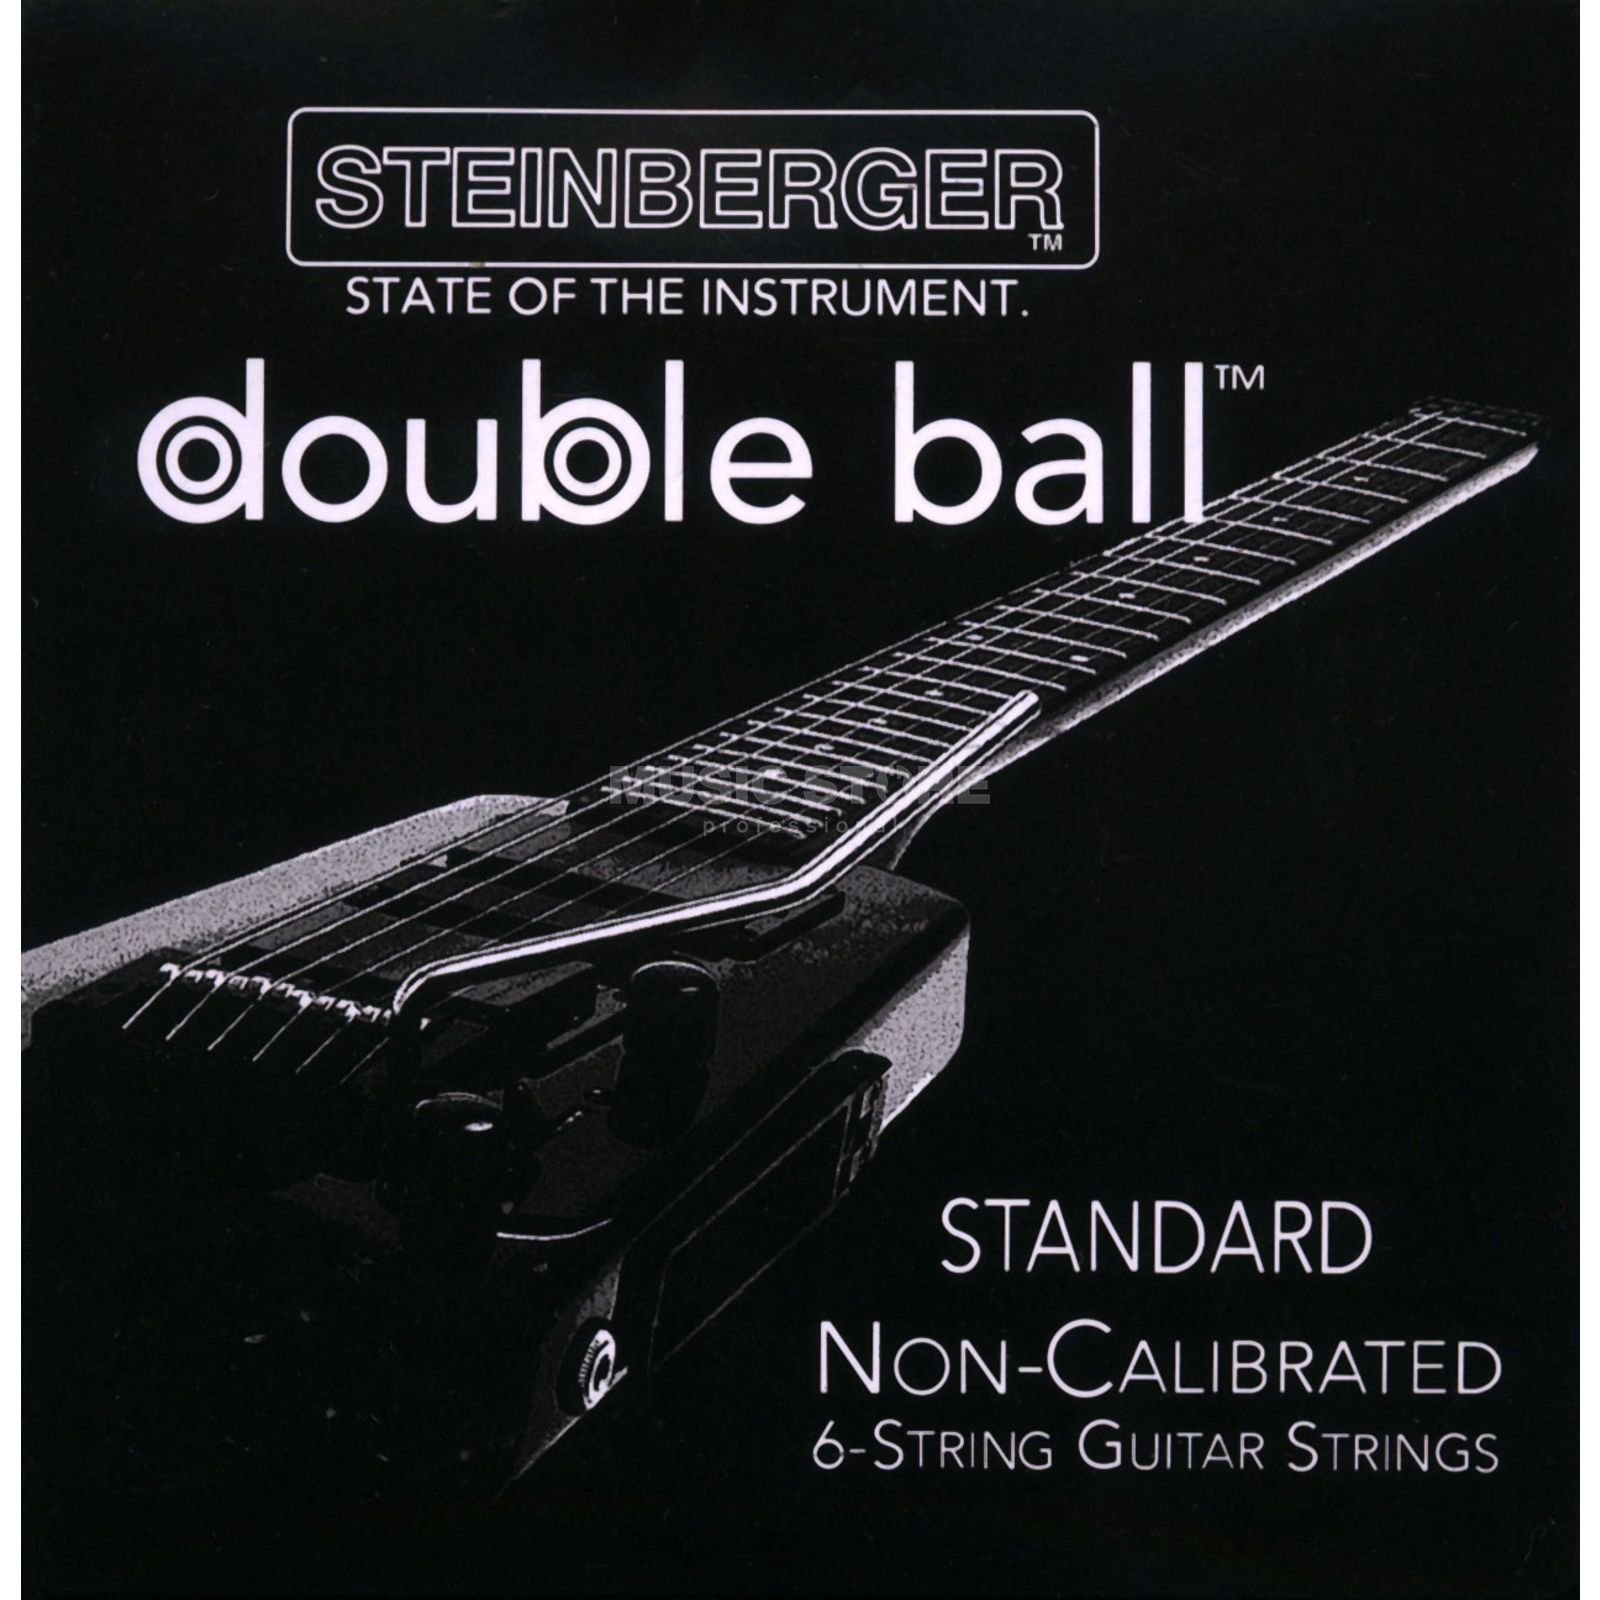 Steinberger SST-105 Standard 10-46 Product Image